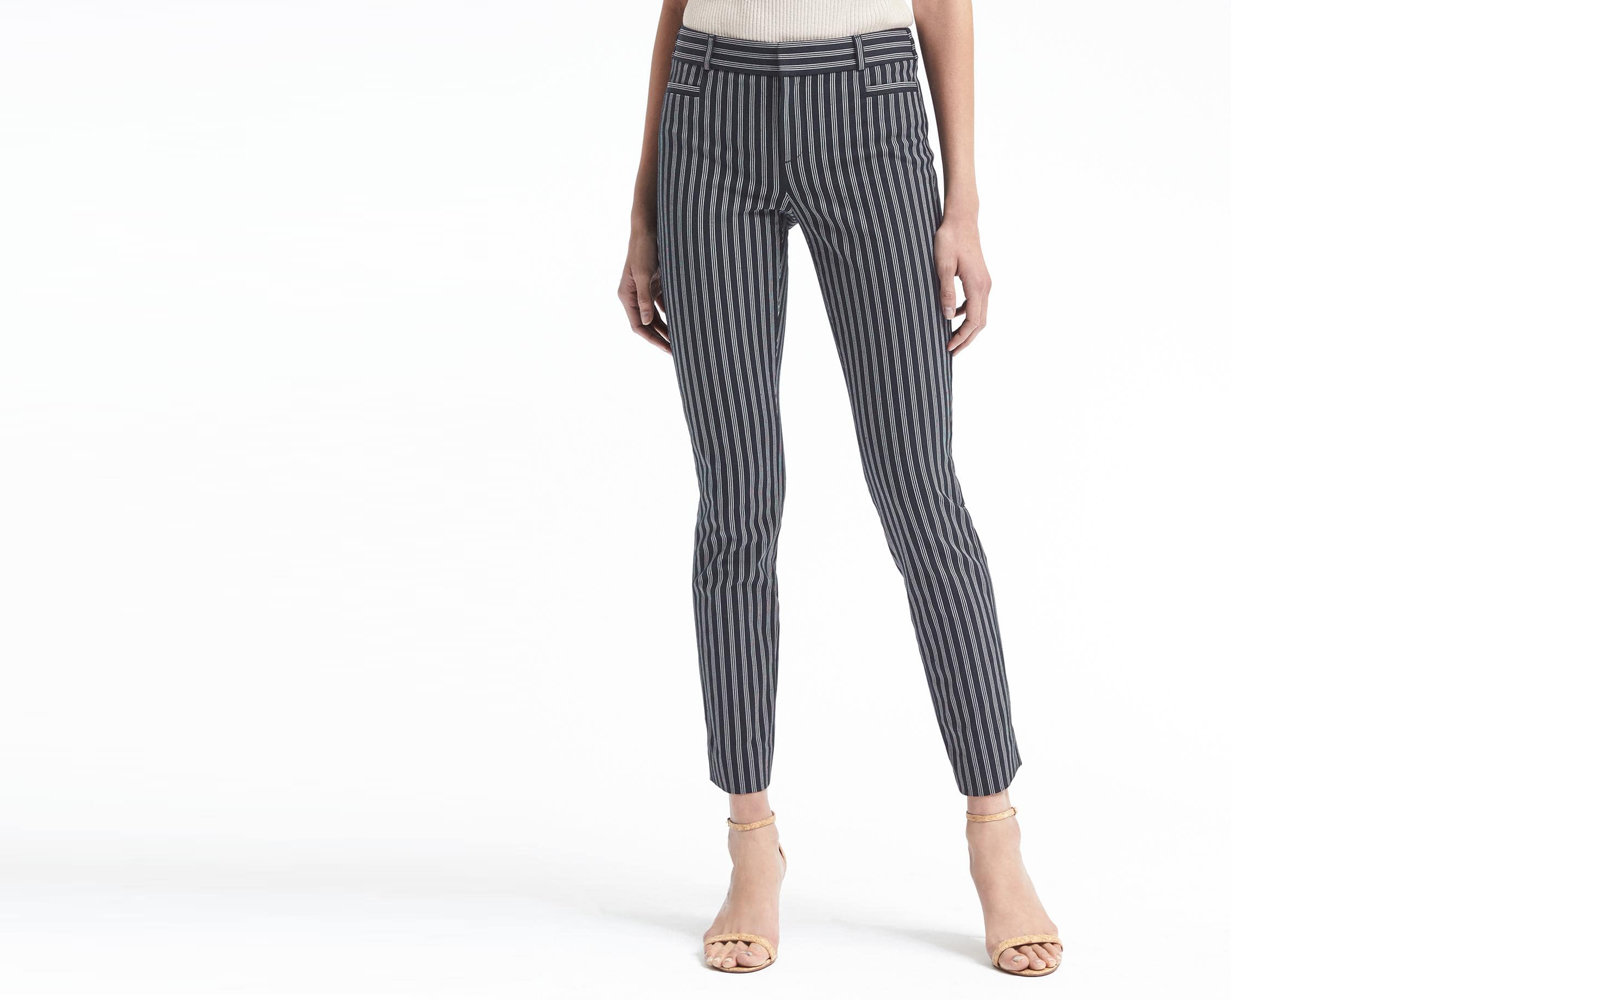 Banana Republic Sloan Stripe Bi-Stretch Pant